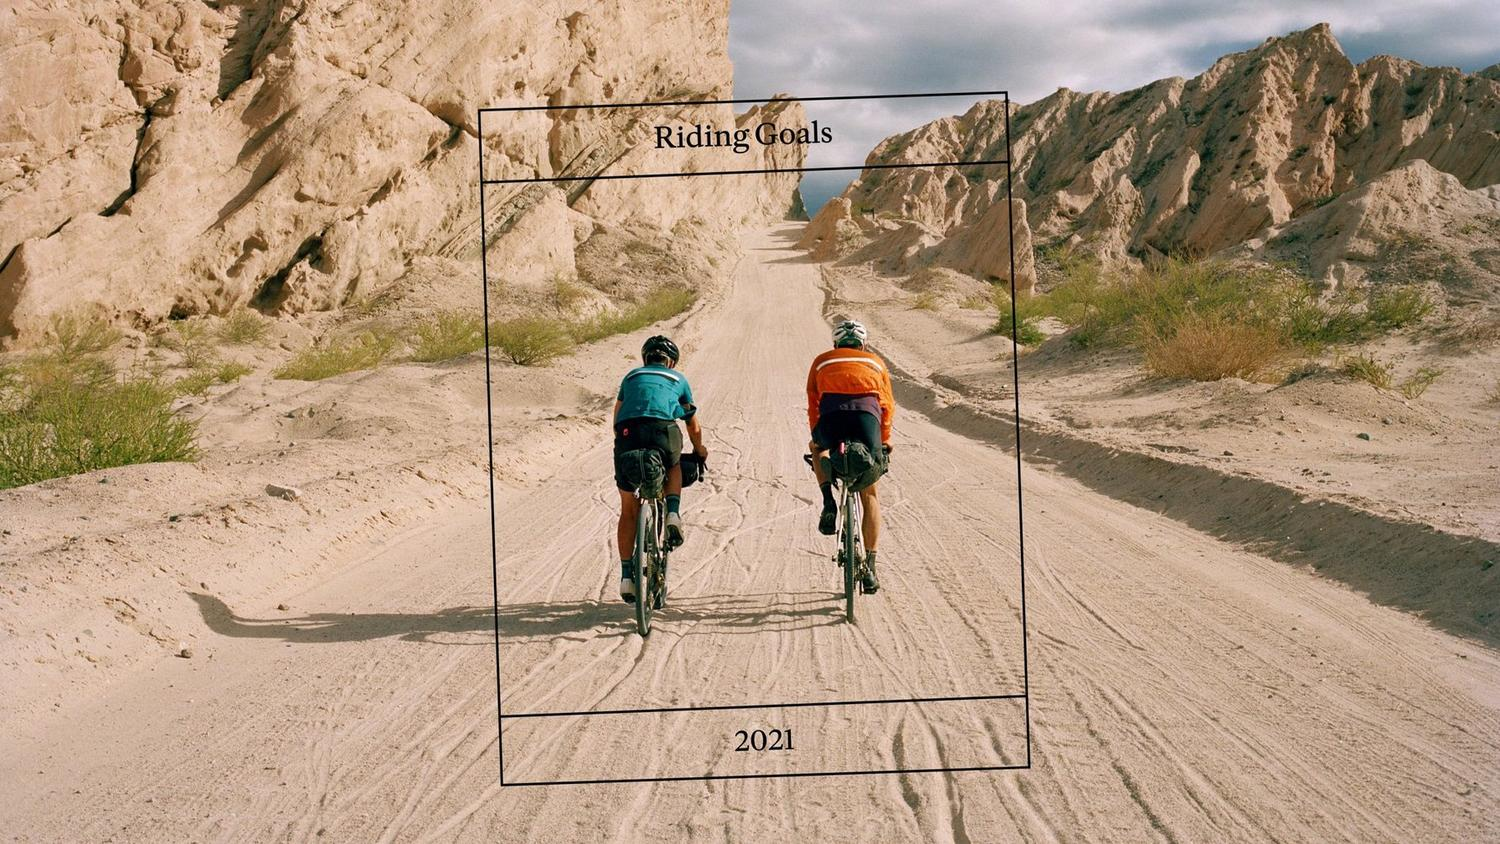 Rapha Riding Goals - Cycling Events, Races and Adventures for 2021